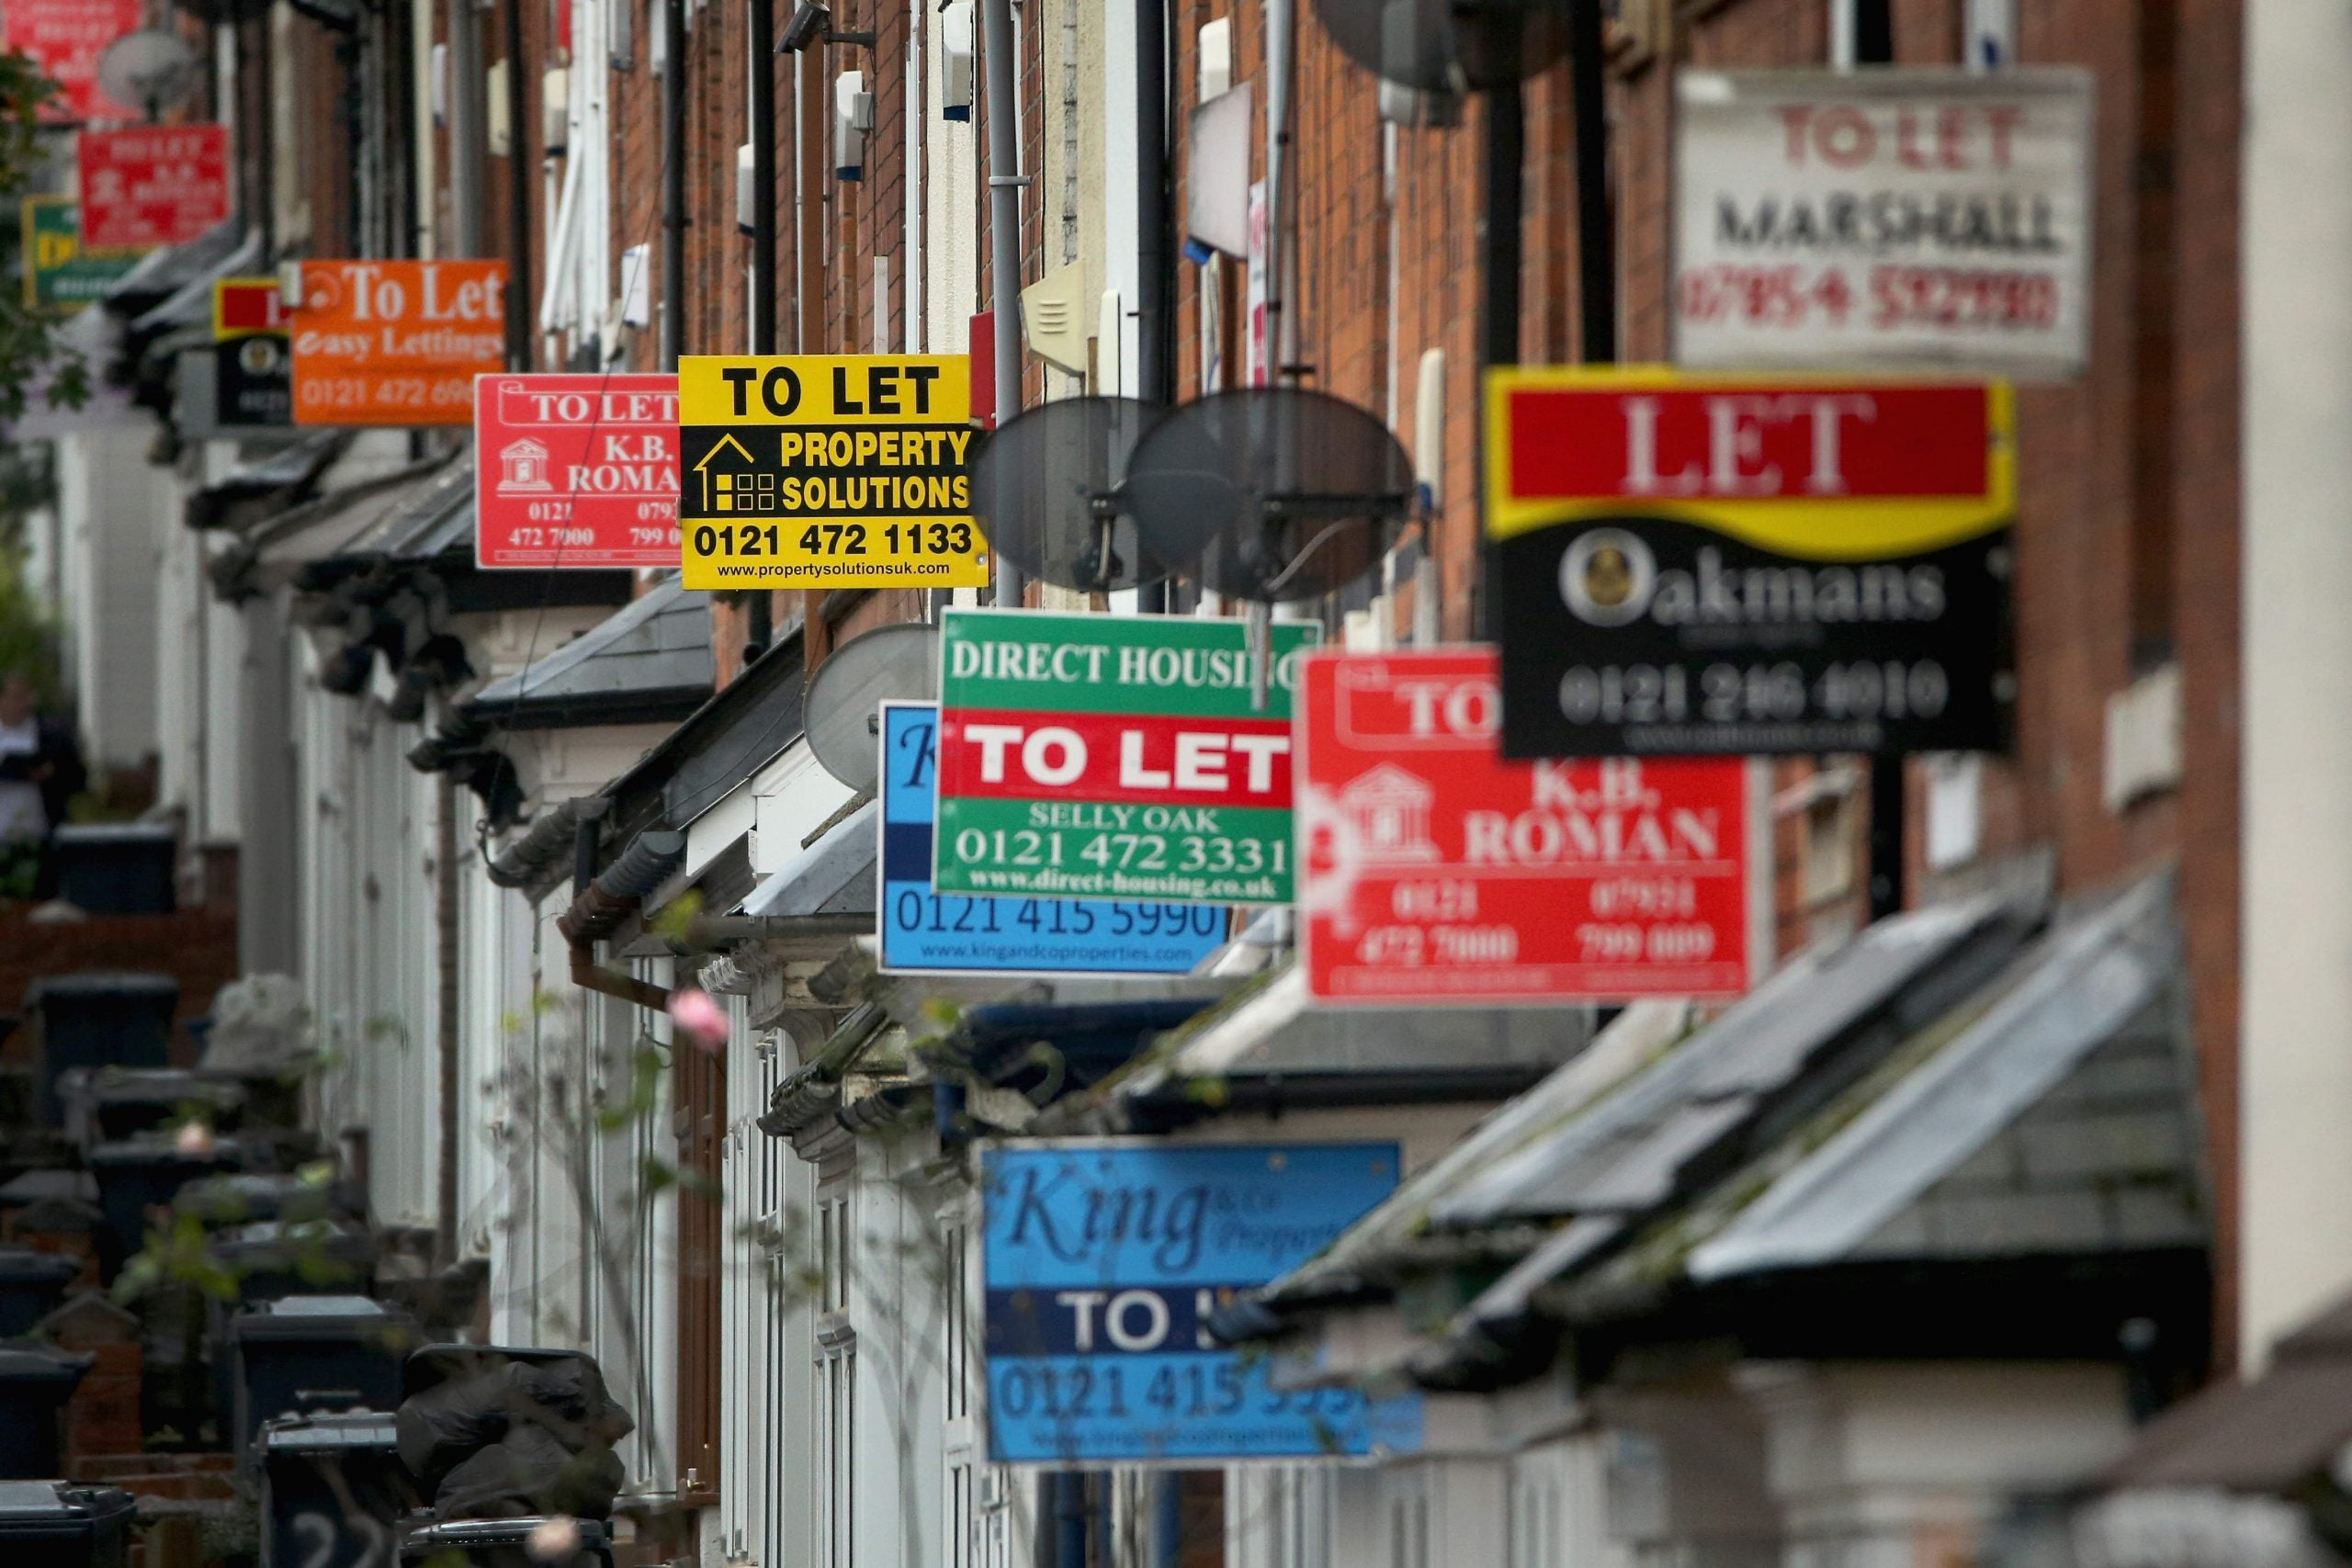 Can the new political divide between owners and renters be bridged?